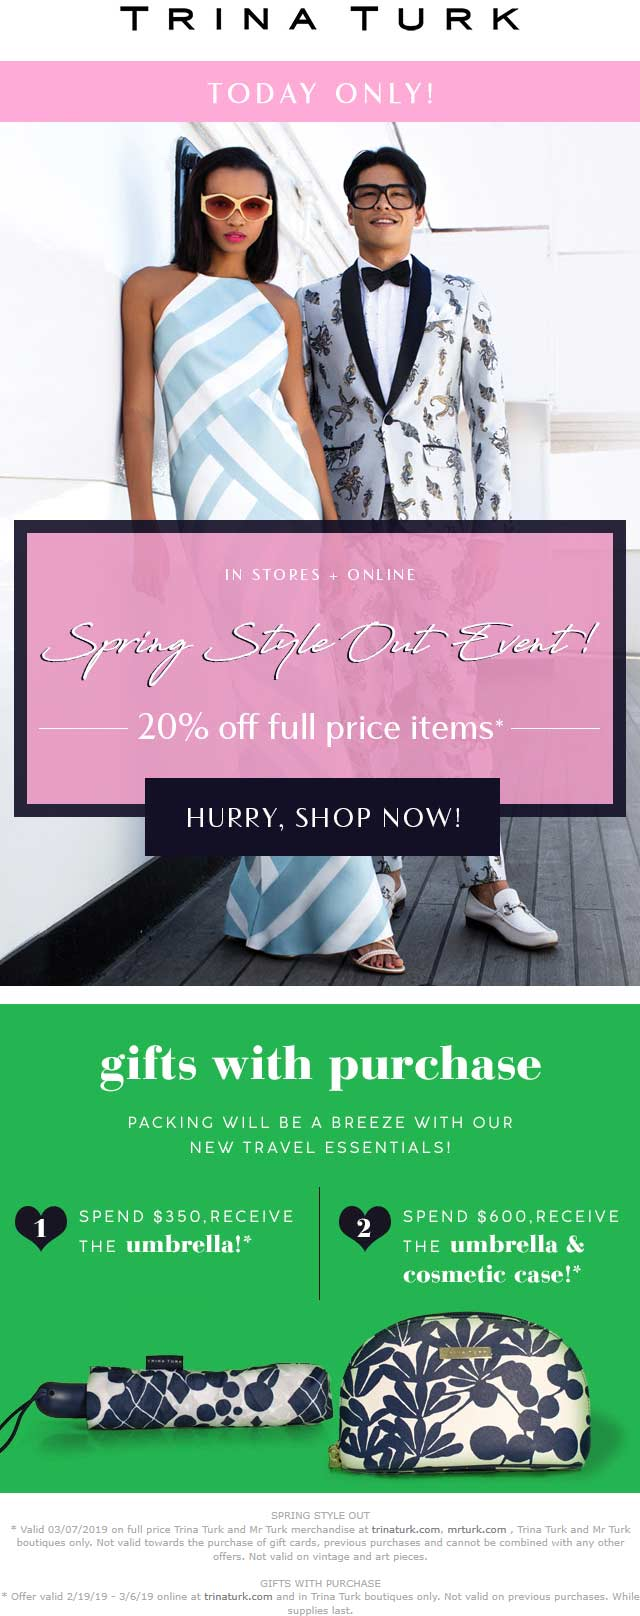 Trina Turk Coupon October 2019 20% off today at Trina Turk, ditto online